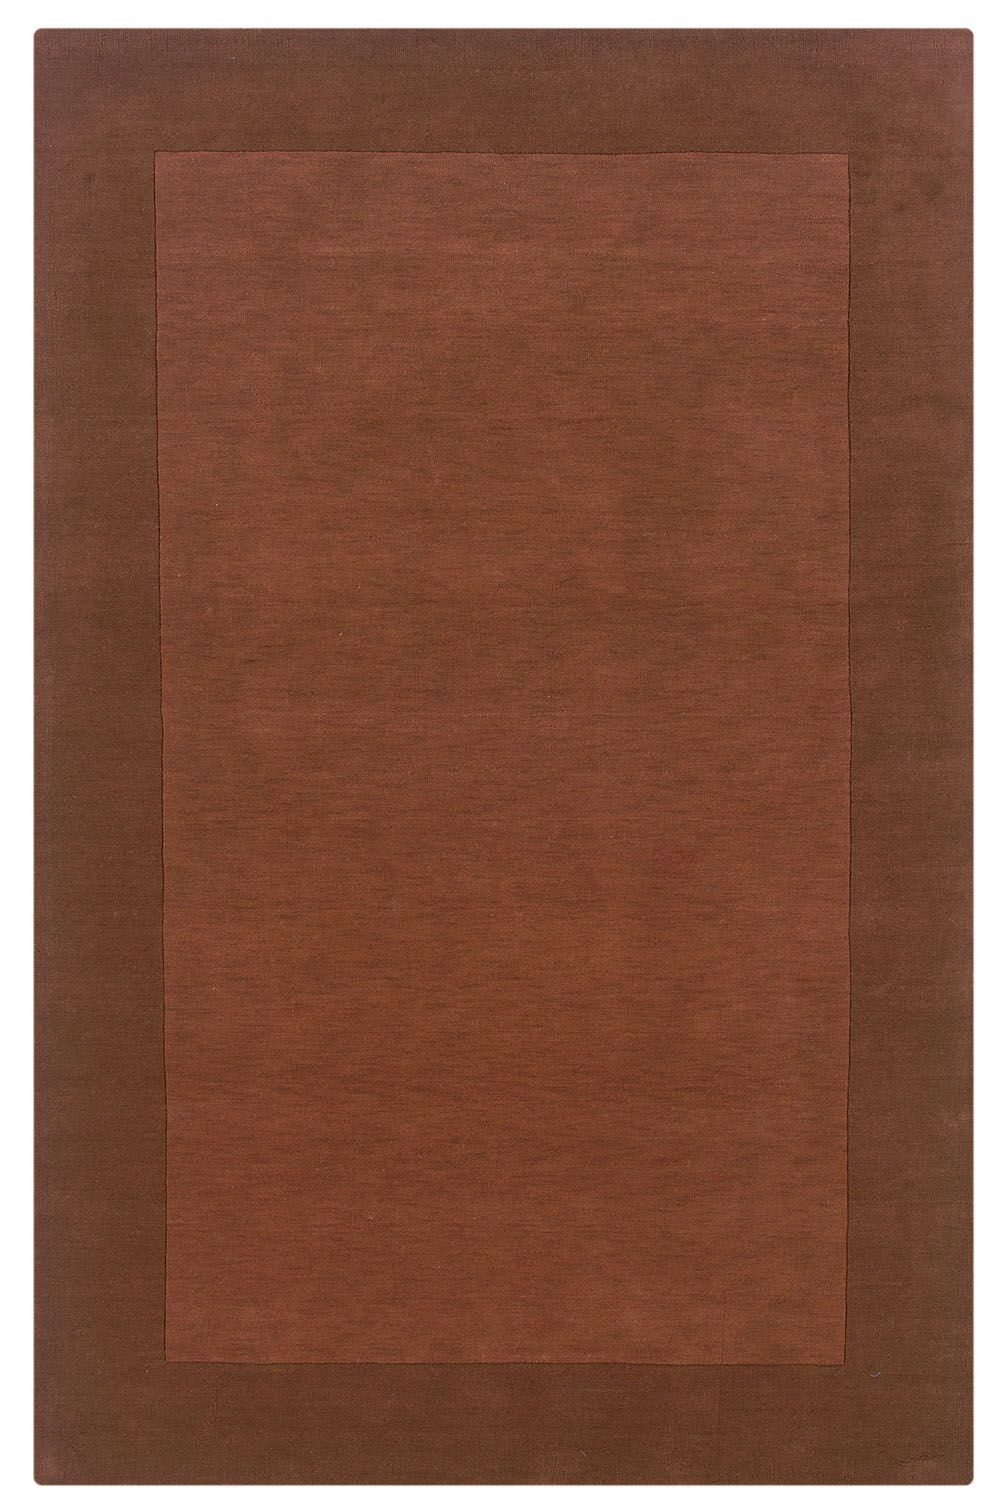 Hand-Woven Terracotta Area Rug Rug Size: Rectangle 8' x 10'